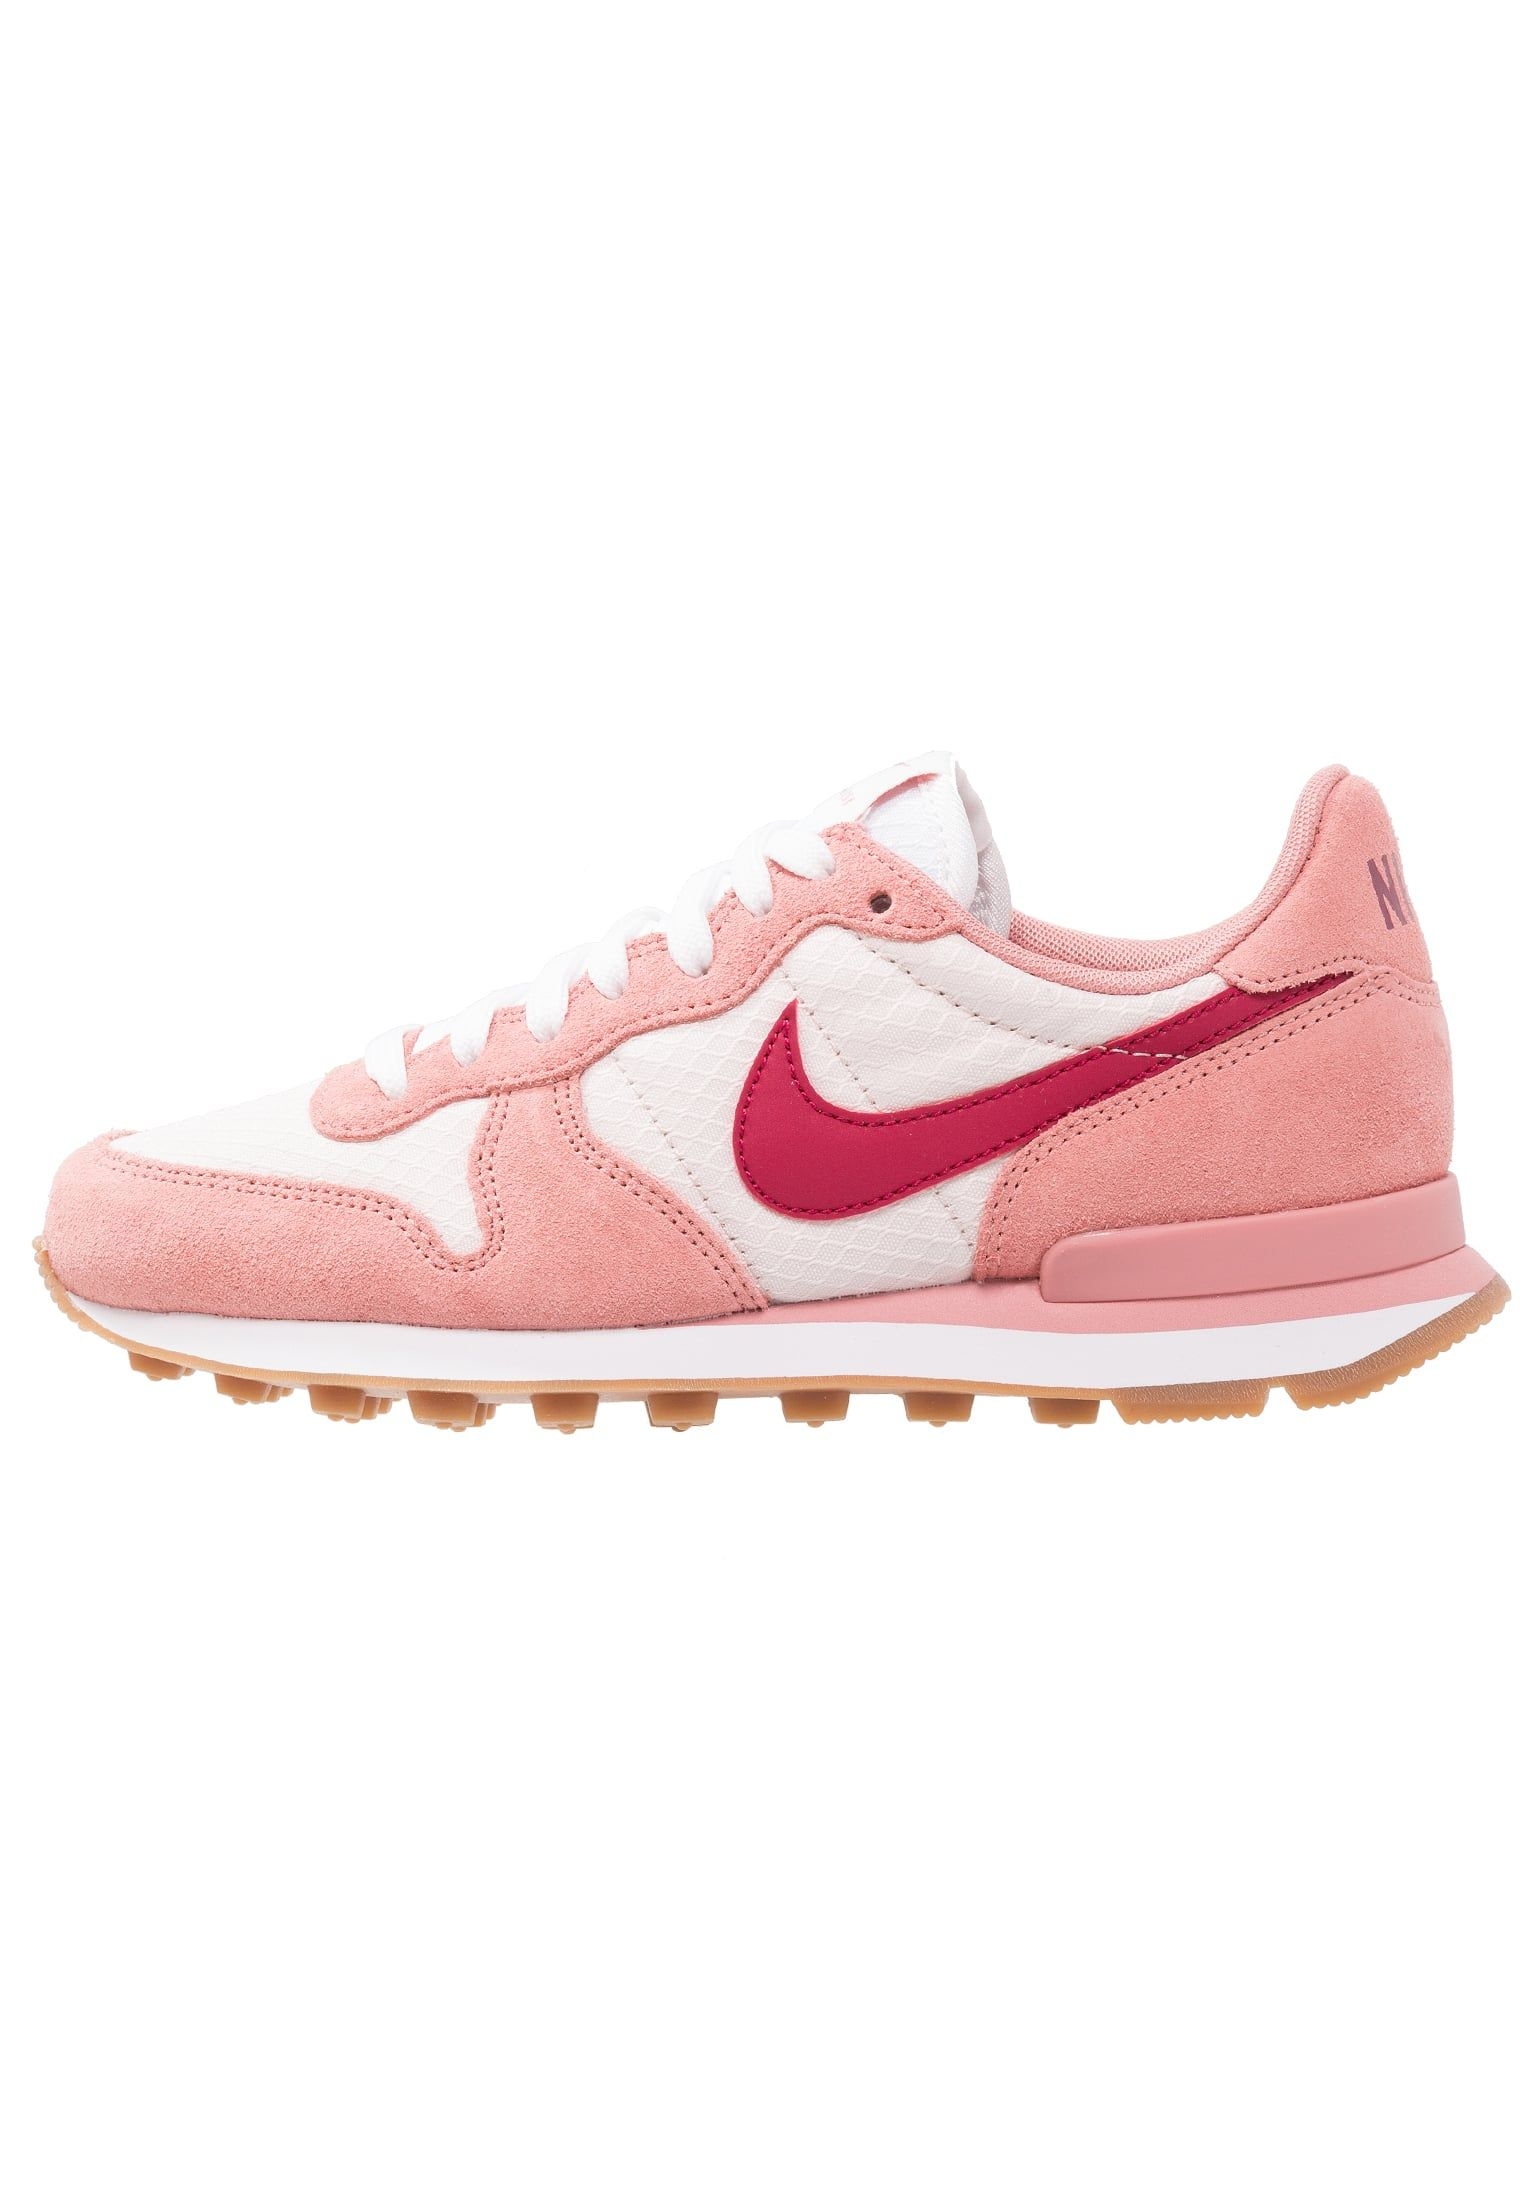 uk availability b52a6 29f99 ... shopping nike sportswear internationalist sneaker low red stardust  zalando.de 02dd4 12148